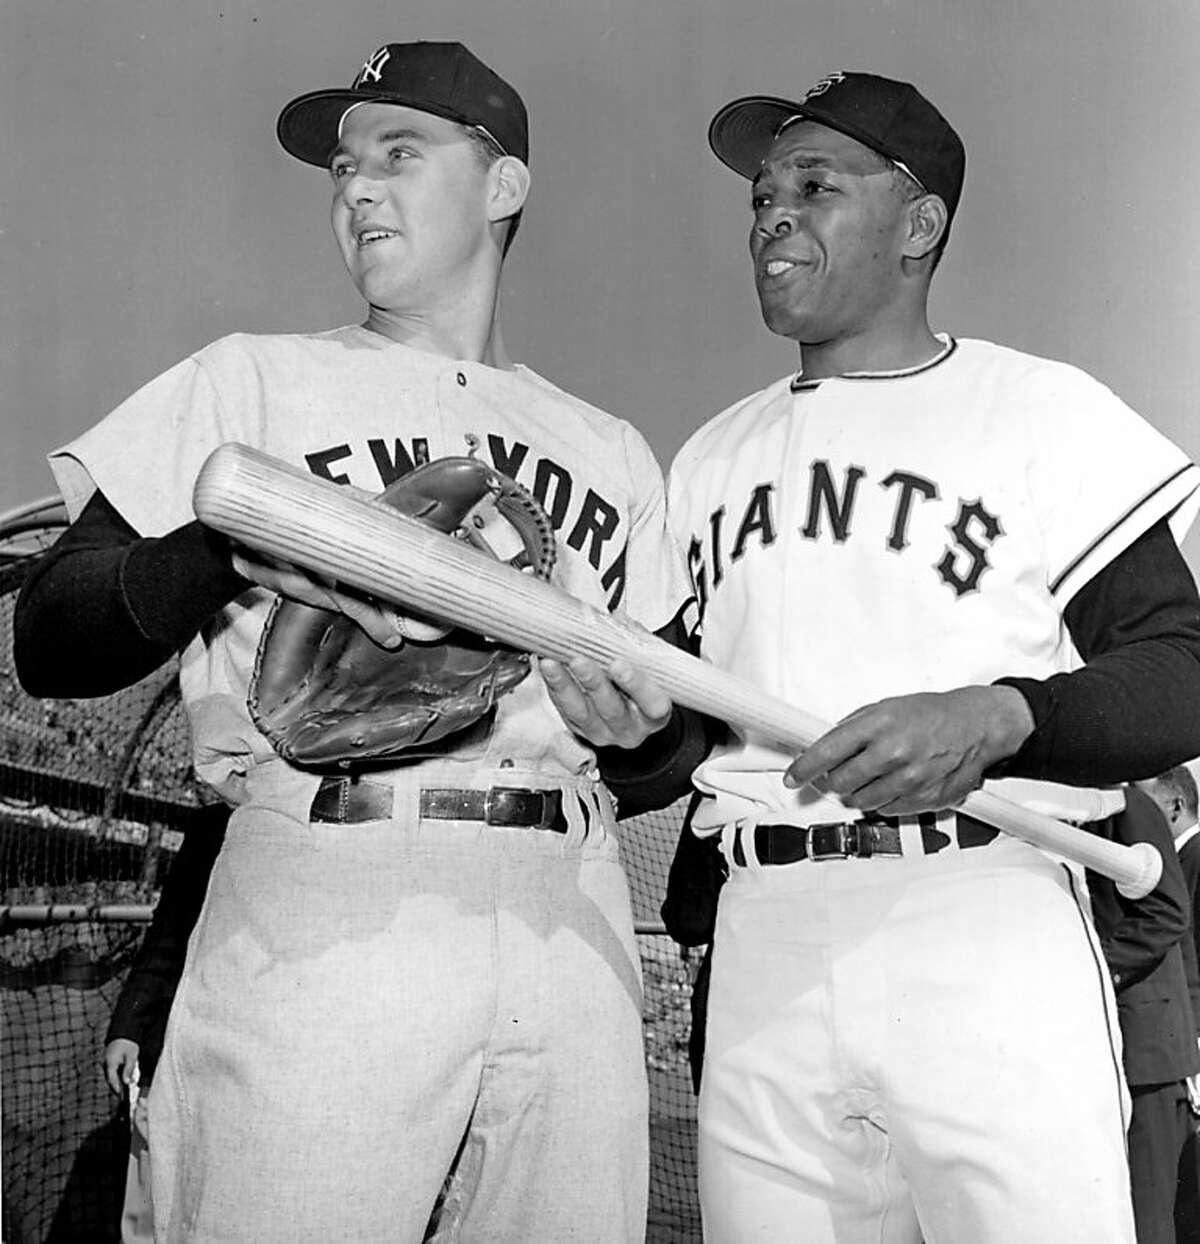 In this Oct. 4, 1962, file photo, Tom Tresh, left, of the New York Yankees, and Willie Mays, of the San Francisco Giants, talk before the first game of the World Series in San Francisco. Two ballparks and a half century after the Giants relocated from New York, San Francisco Giants fans still are waiting for a World Series championship that eluded them on three occasions.